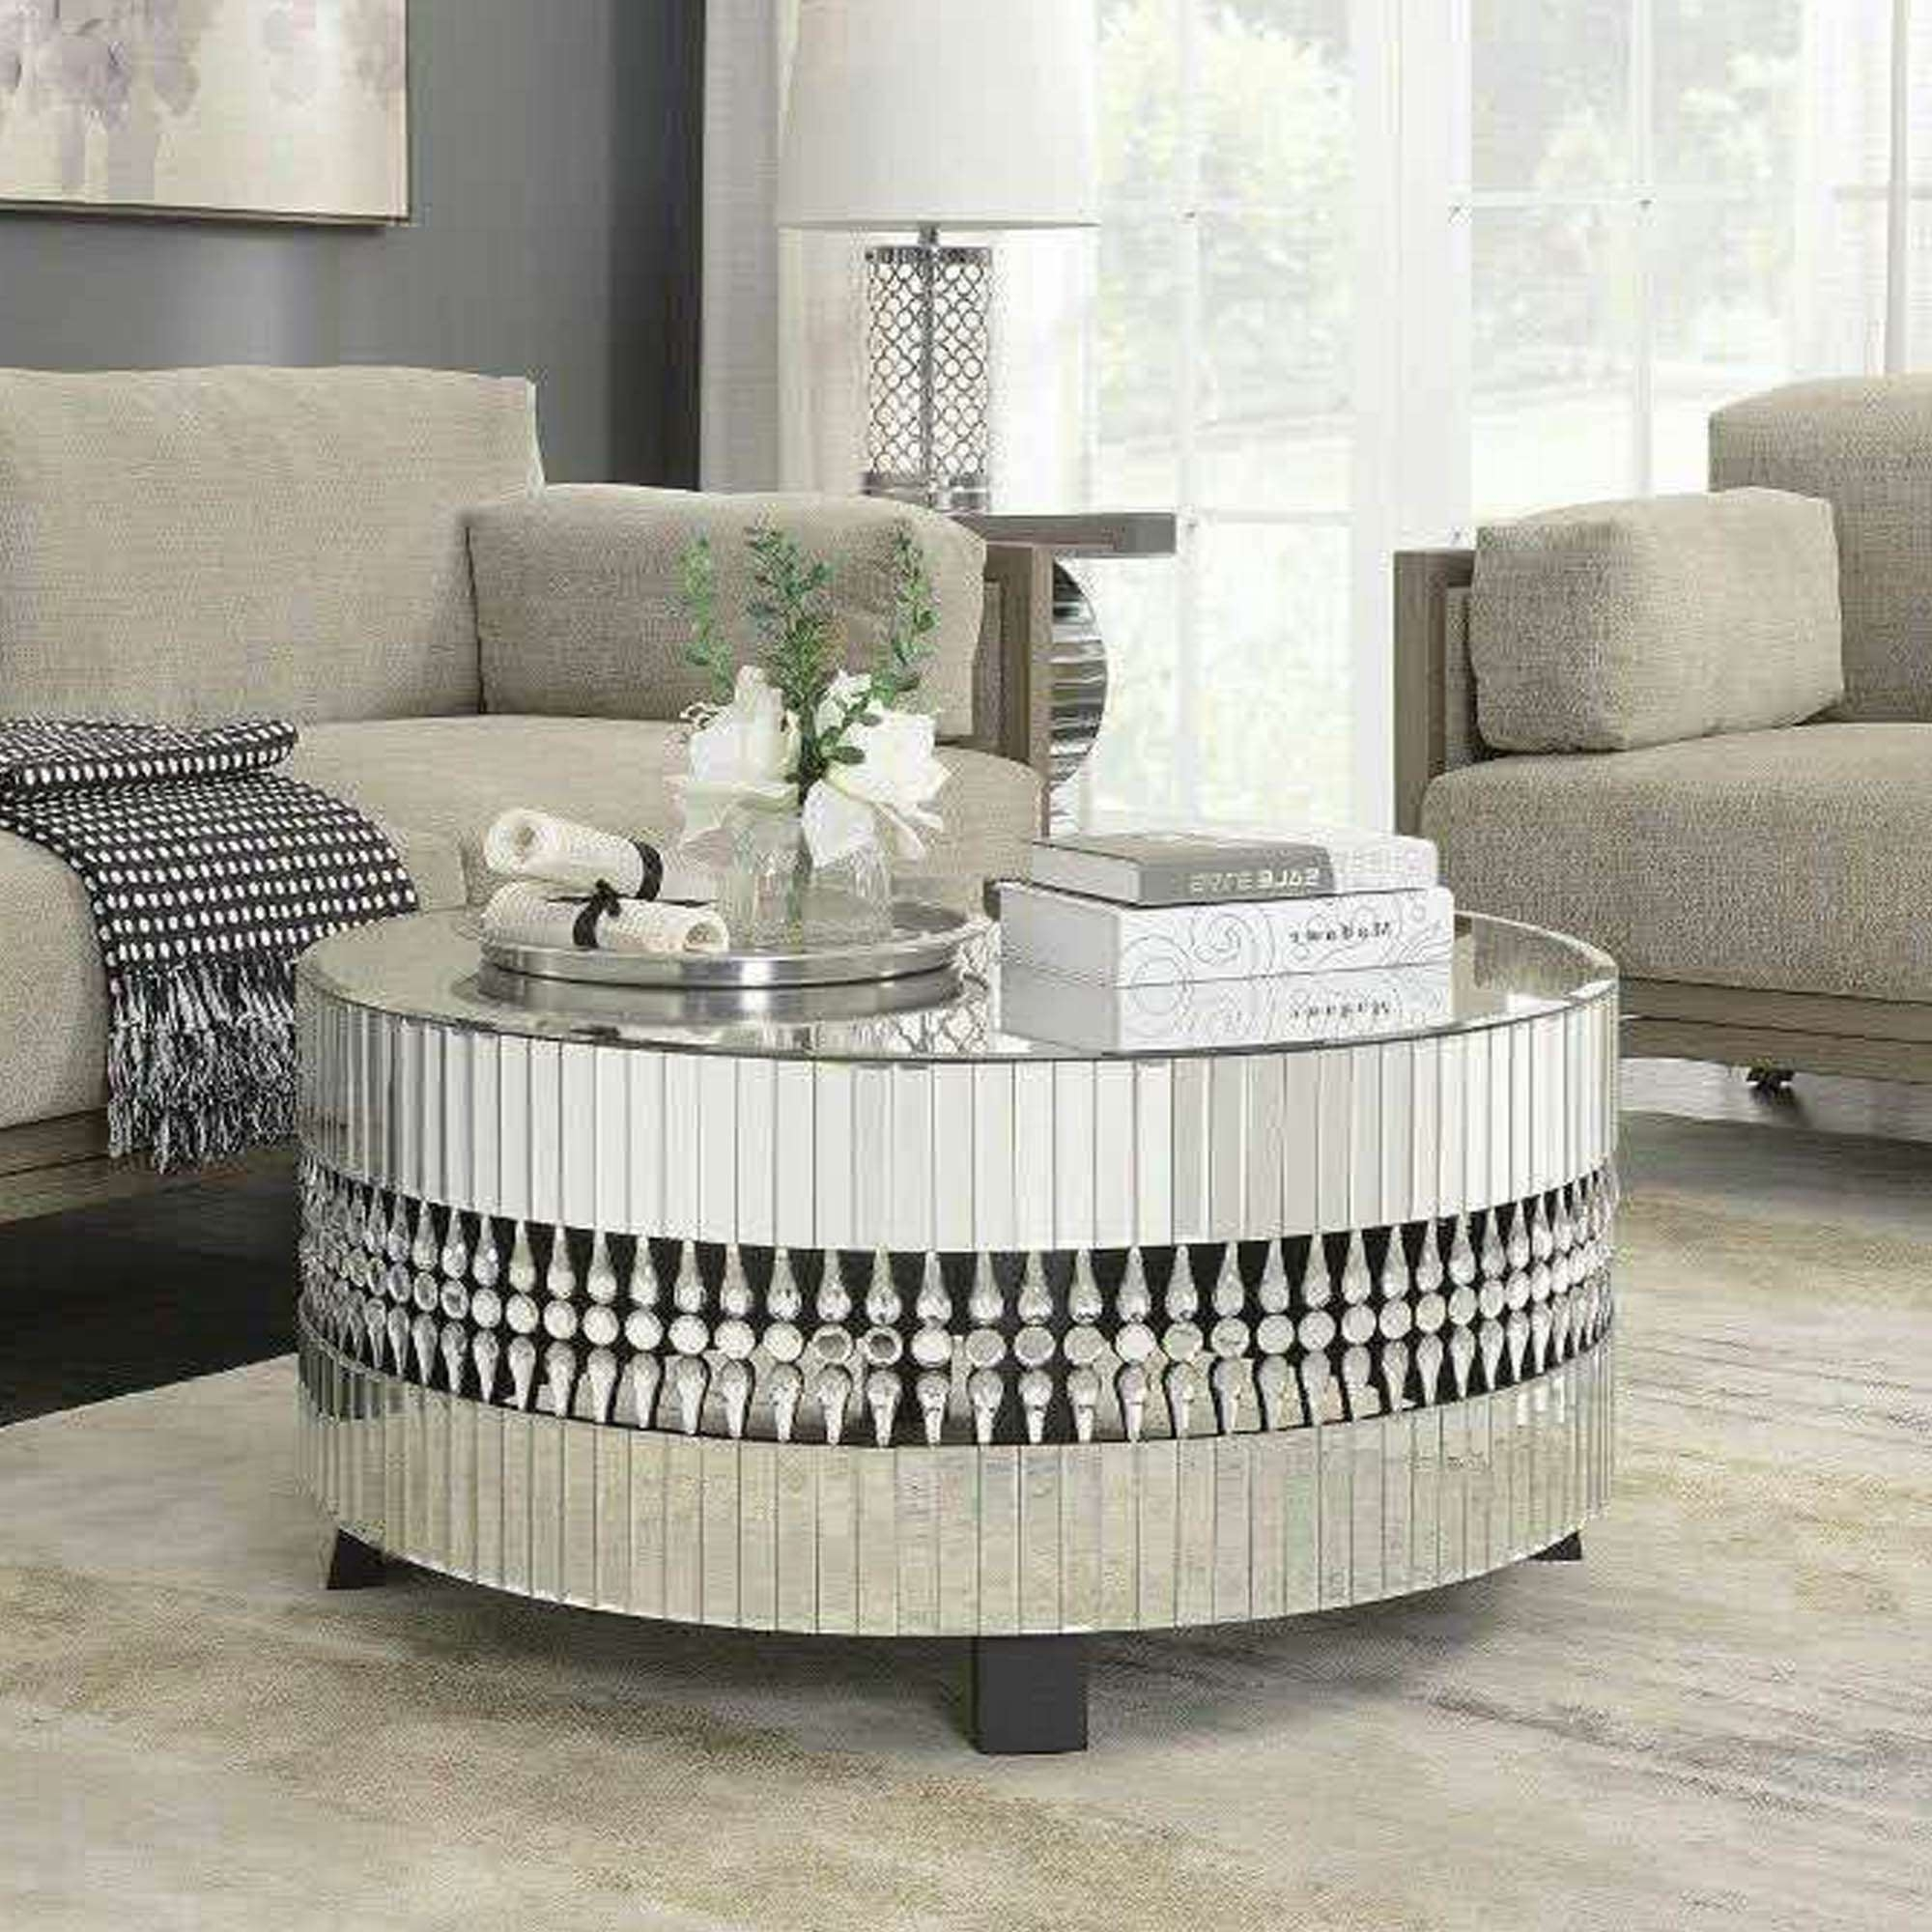 Preferred Mirrored Coffee Tables Pertaining To Coffee Tables : Crystal Mirrored Coffee Table White Marble Sale (View 11 of 20)